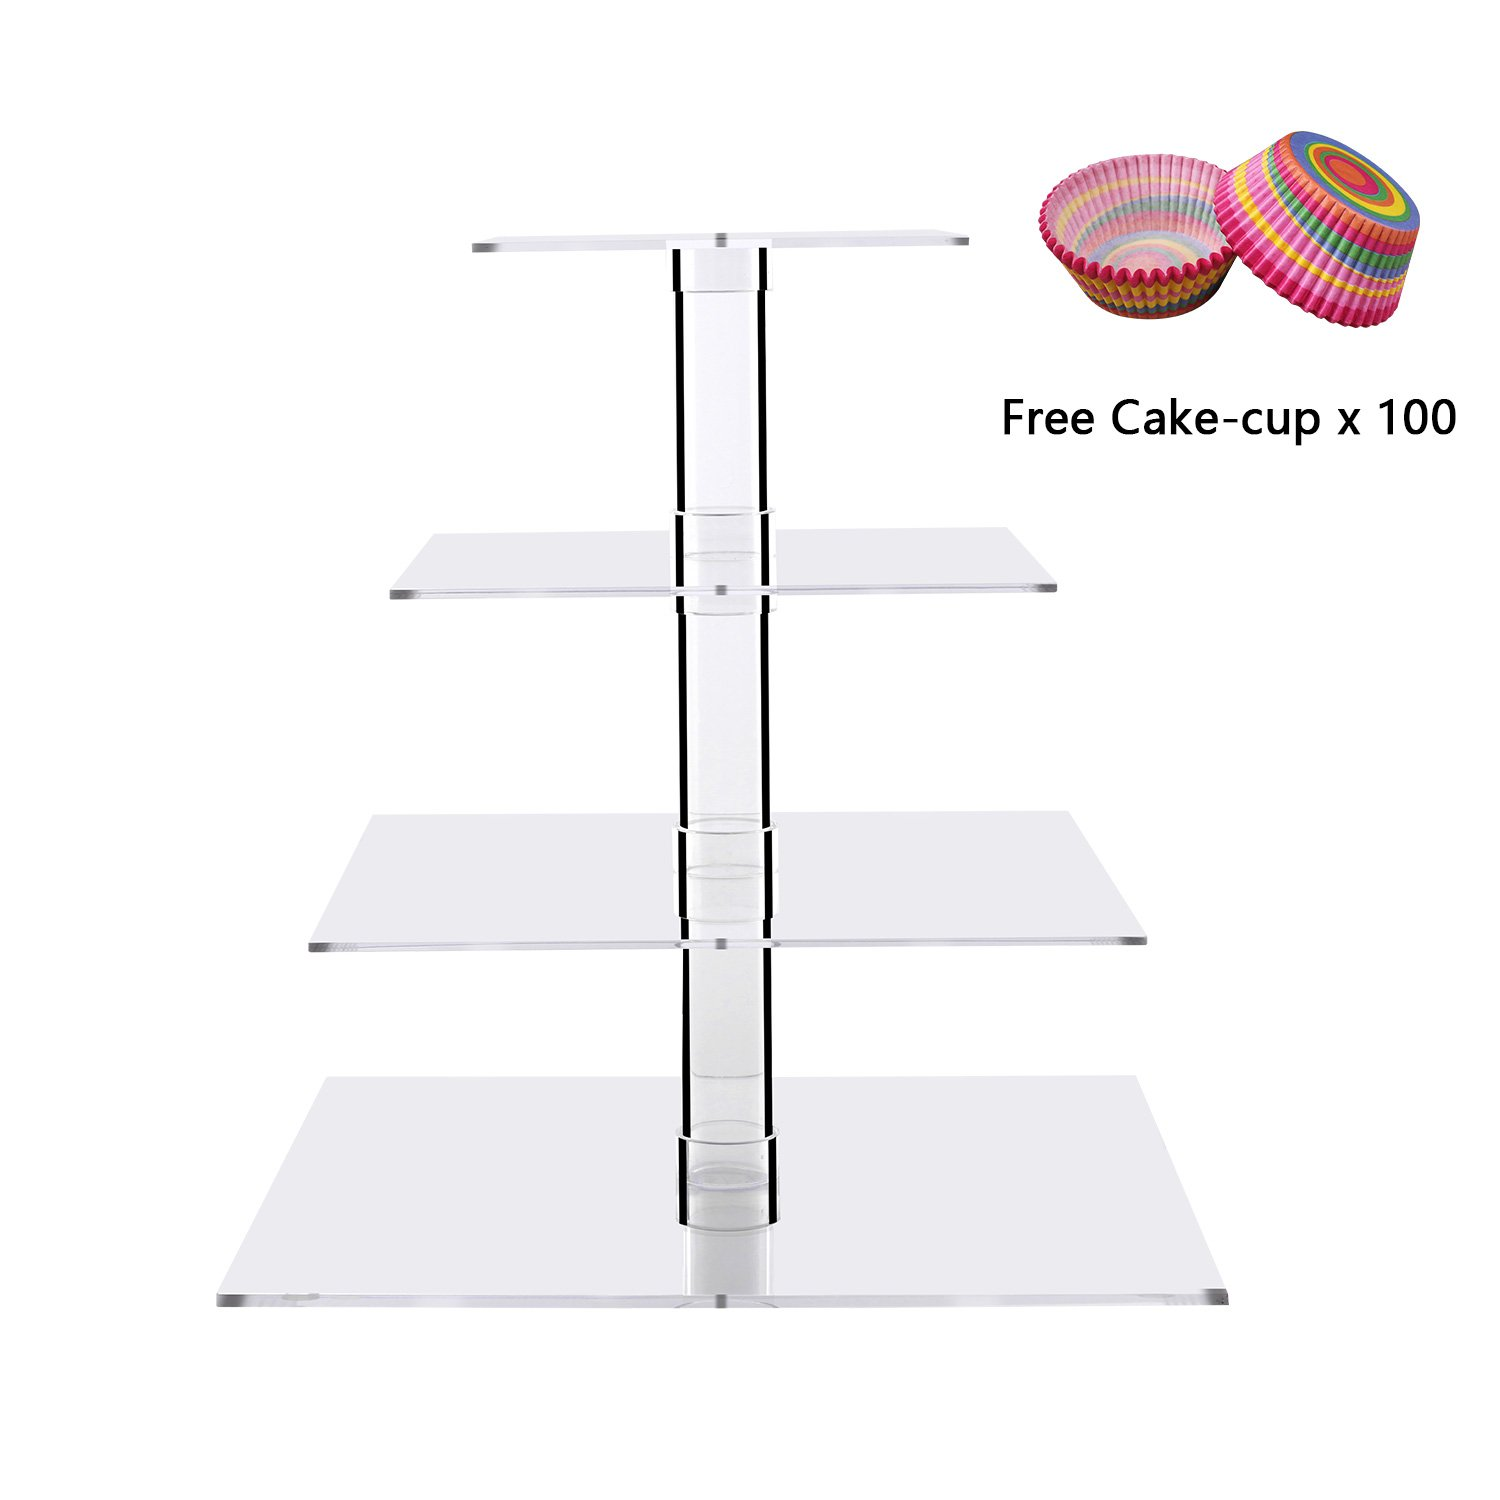 Cupcake Stands Clear Square Dessert Holders Stacked 4 Tiers Wedding Acrylic Tiered Cake Tower Party Tree Serving Tray Cupcake Display Serving Platter for Weddings, Pastries, Birthday, Graduation